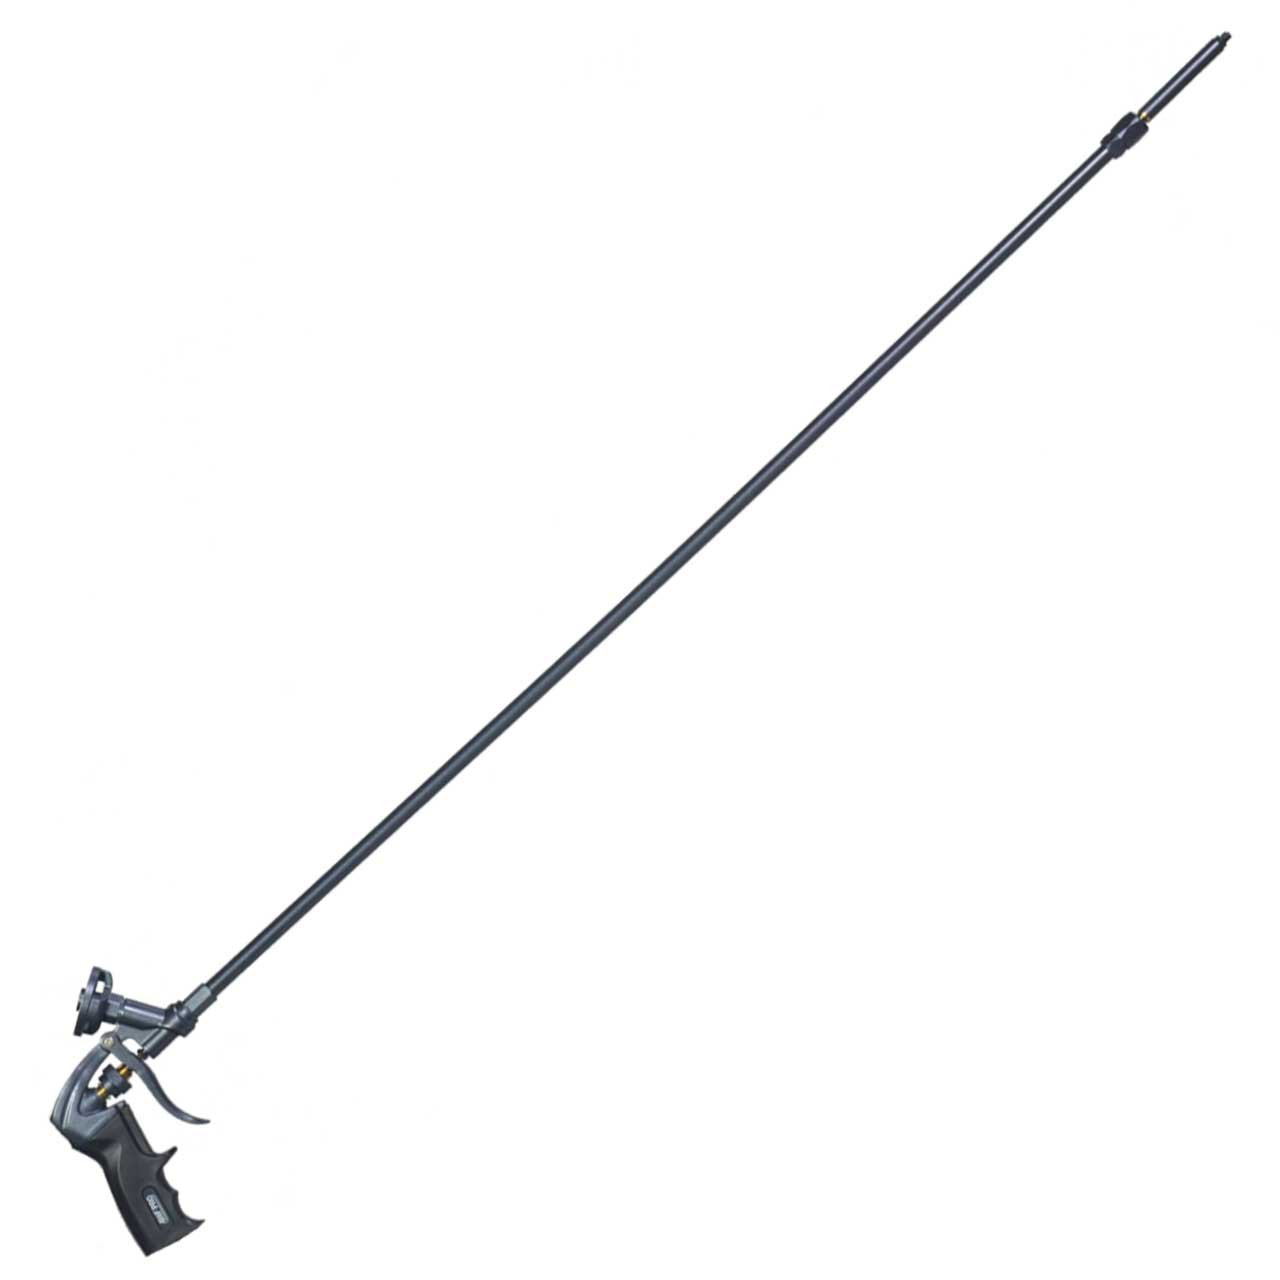 Pro Foam Gun, 40 inch (100 cm) Barrel, Swivel Tip, Teflon Coated, One Hand Adjustment, AWF Pro AWarehouseFull